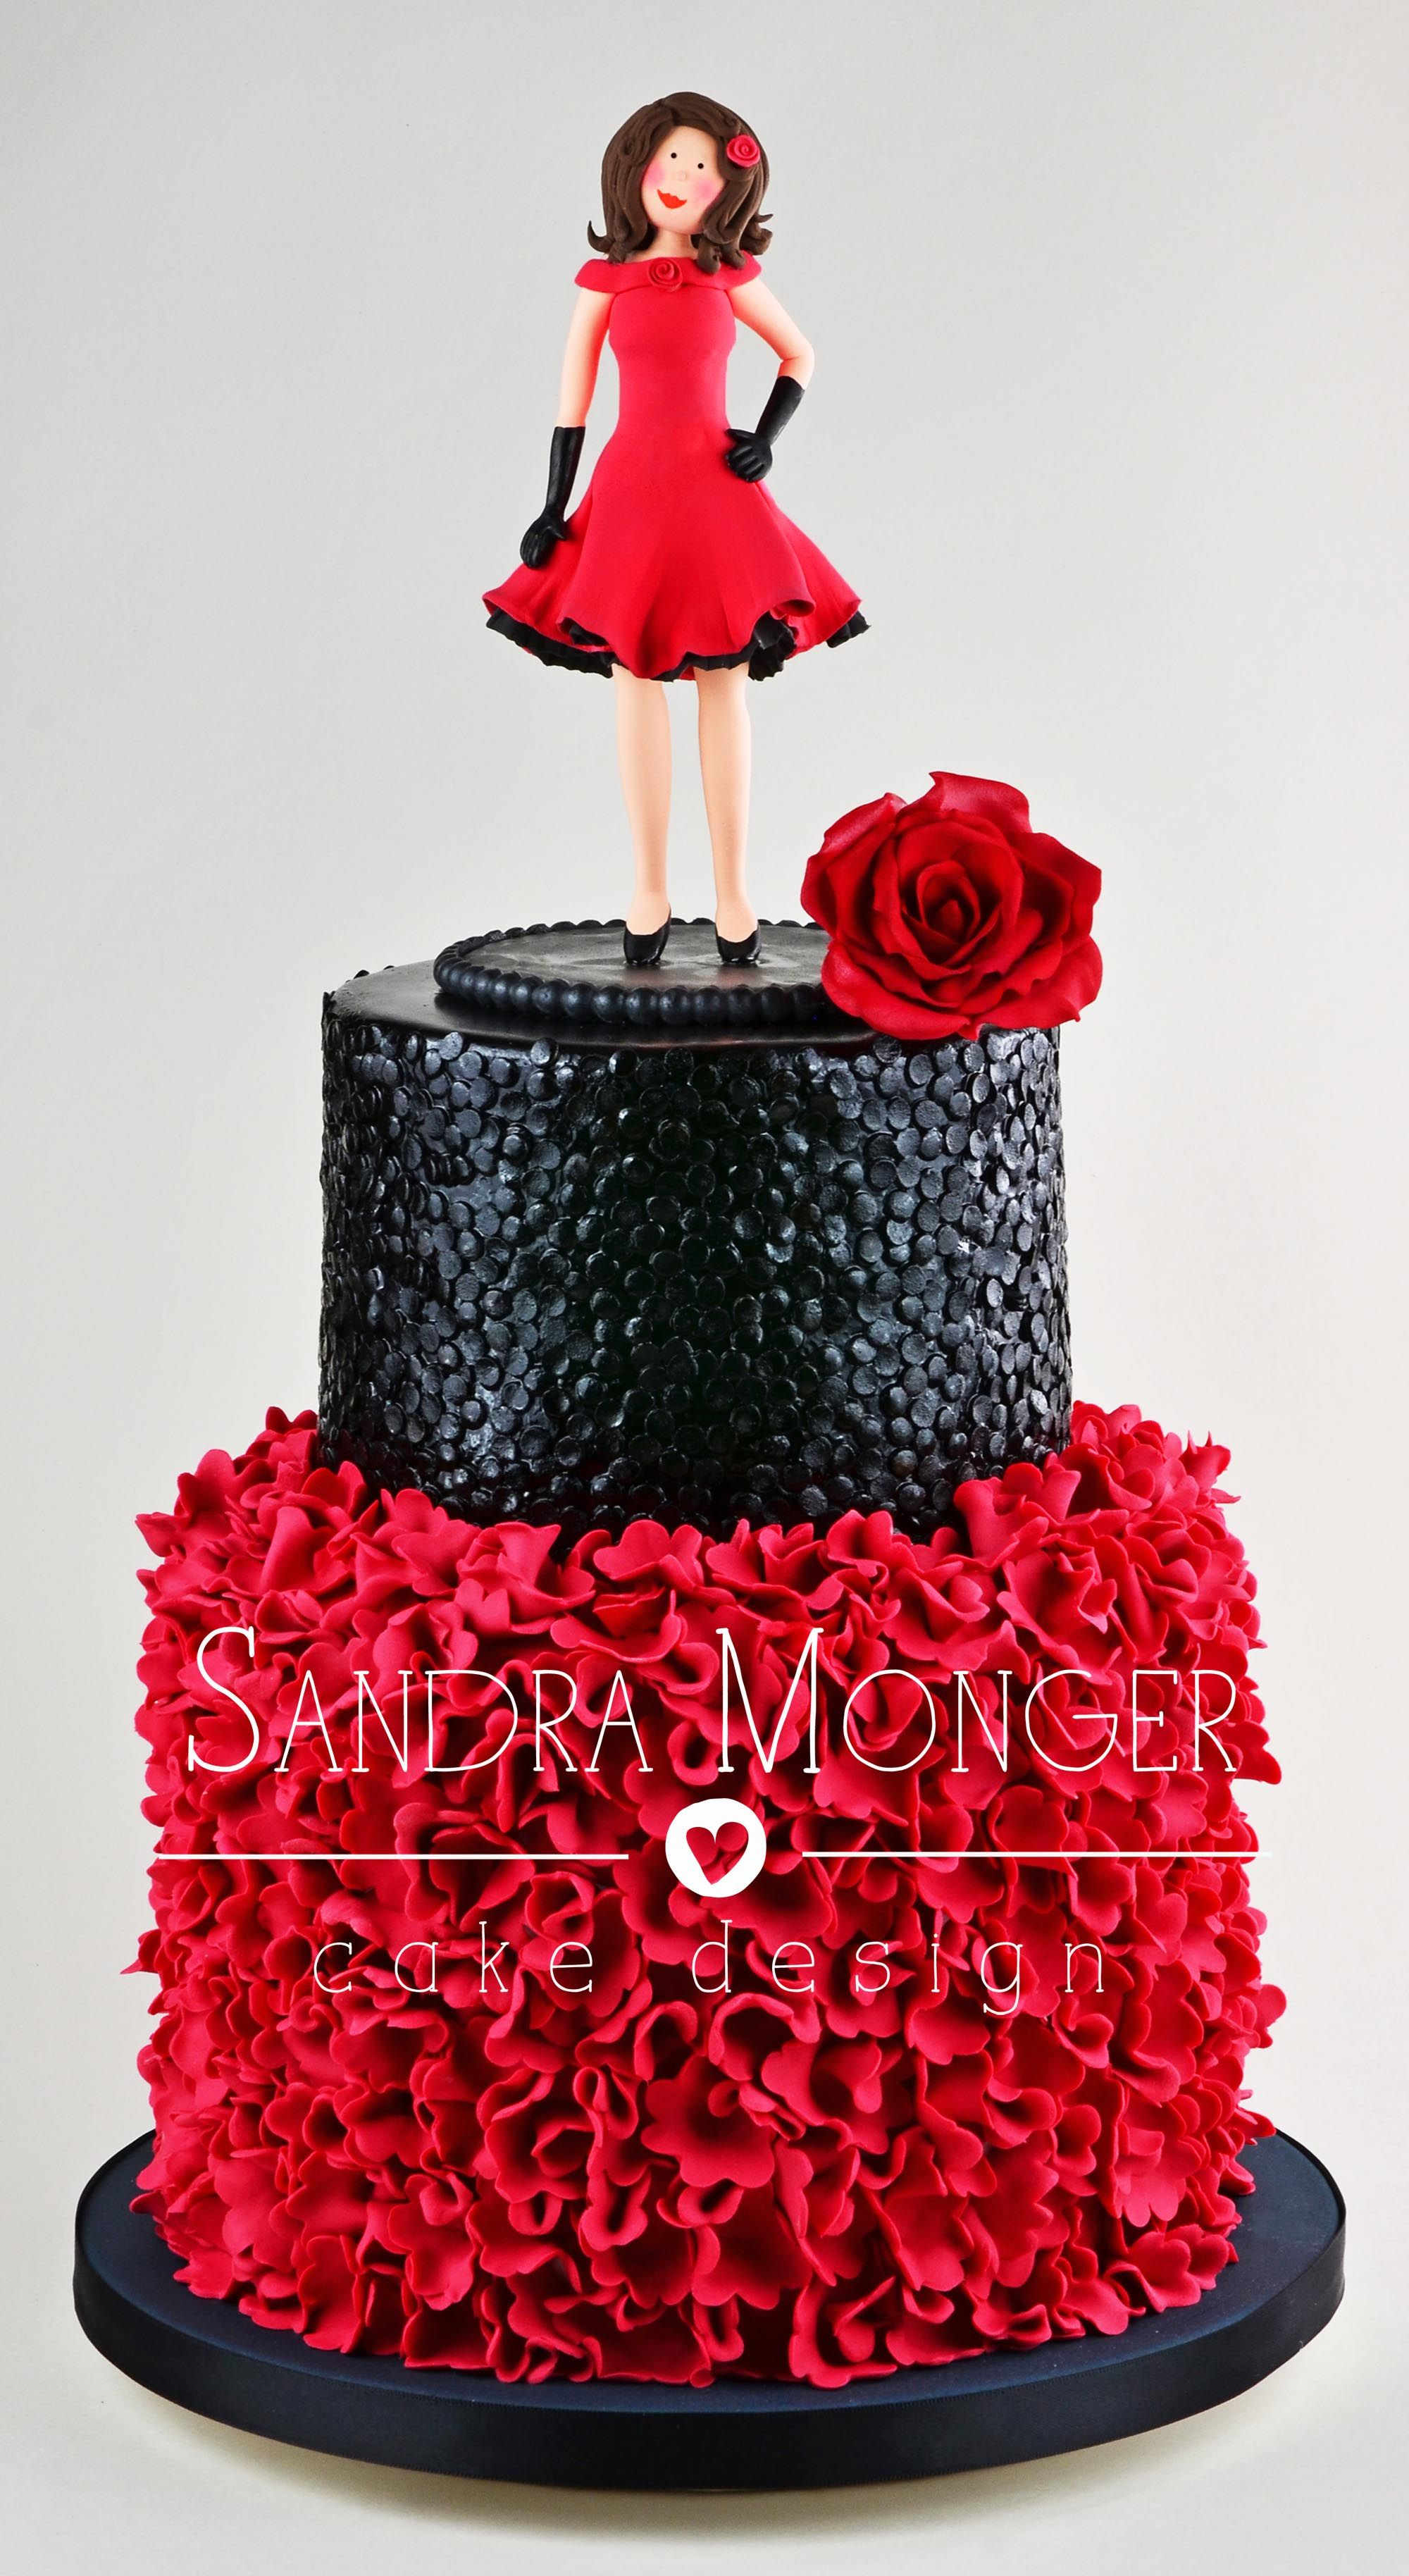 The Lady In Red Birthday Cake With Ruffles And Black Sugar Sequins